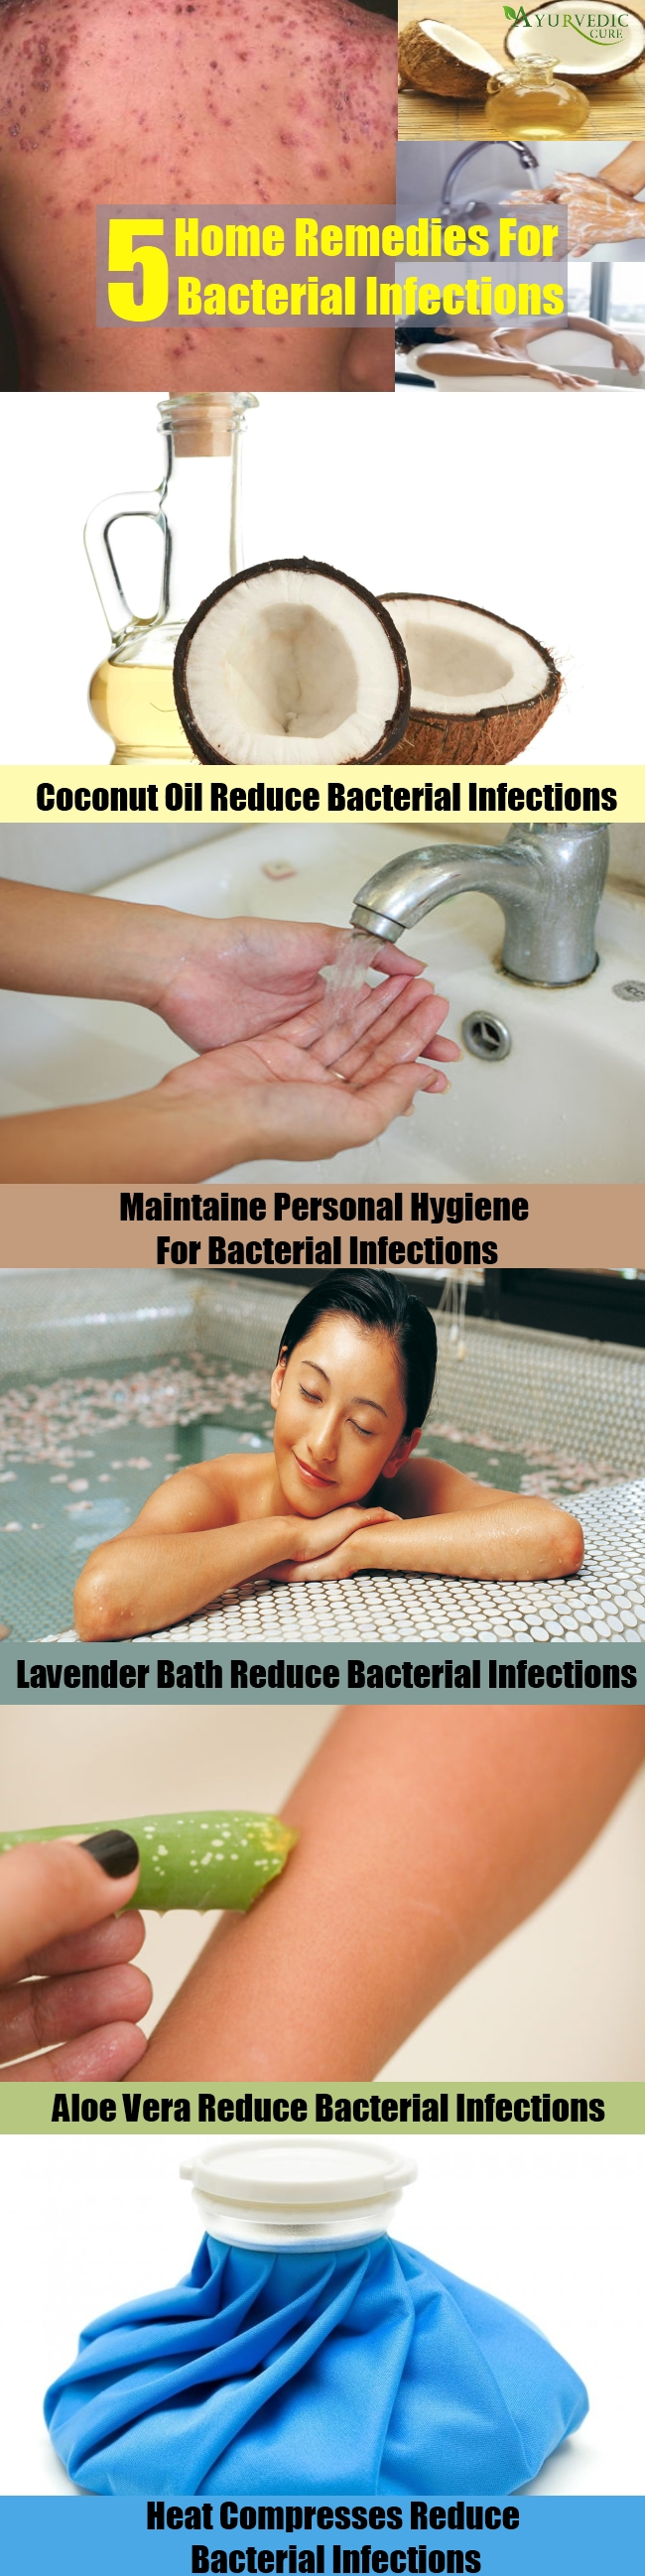 Effective Home Remedies For Bacterial Infections